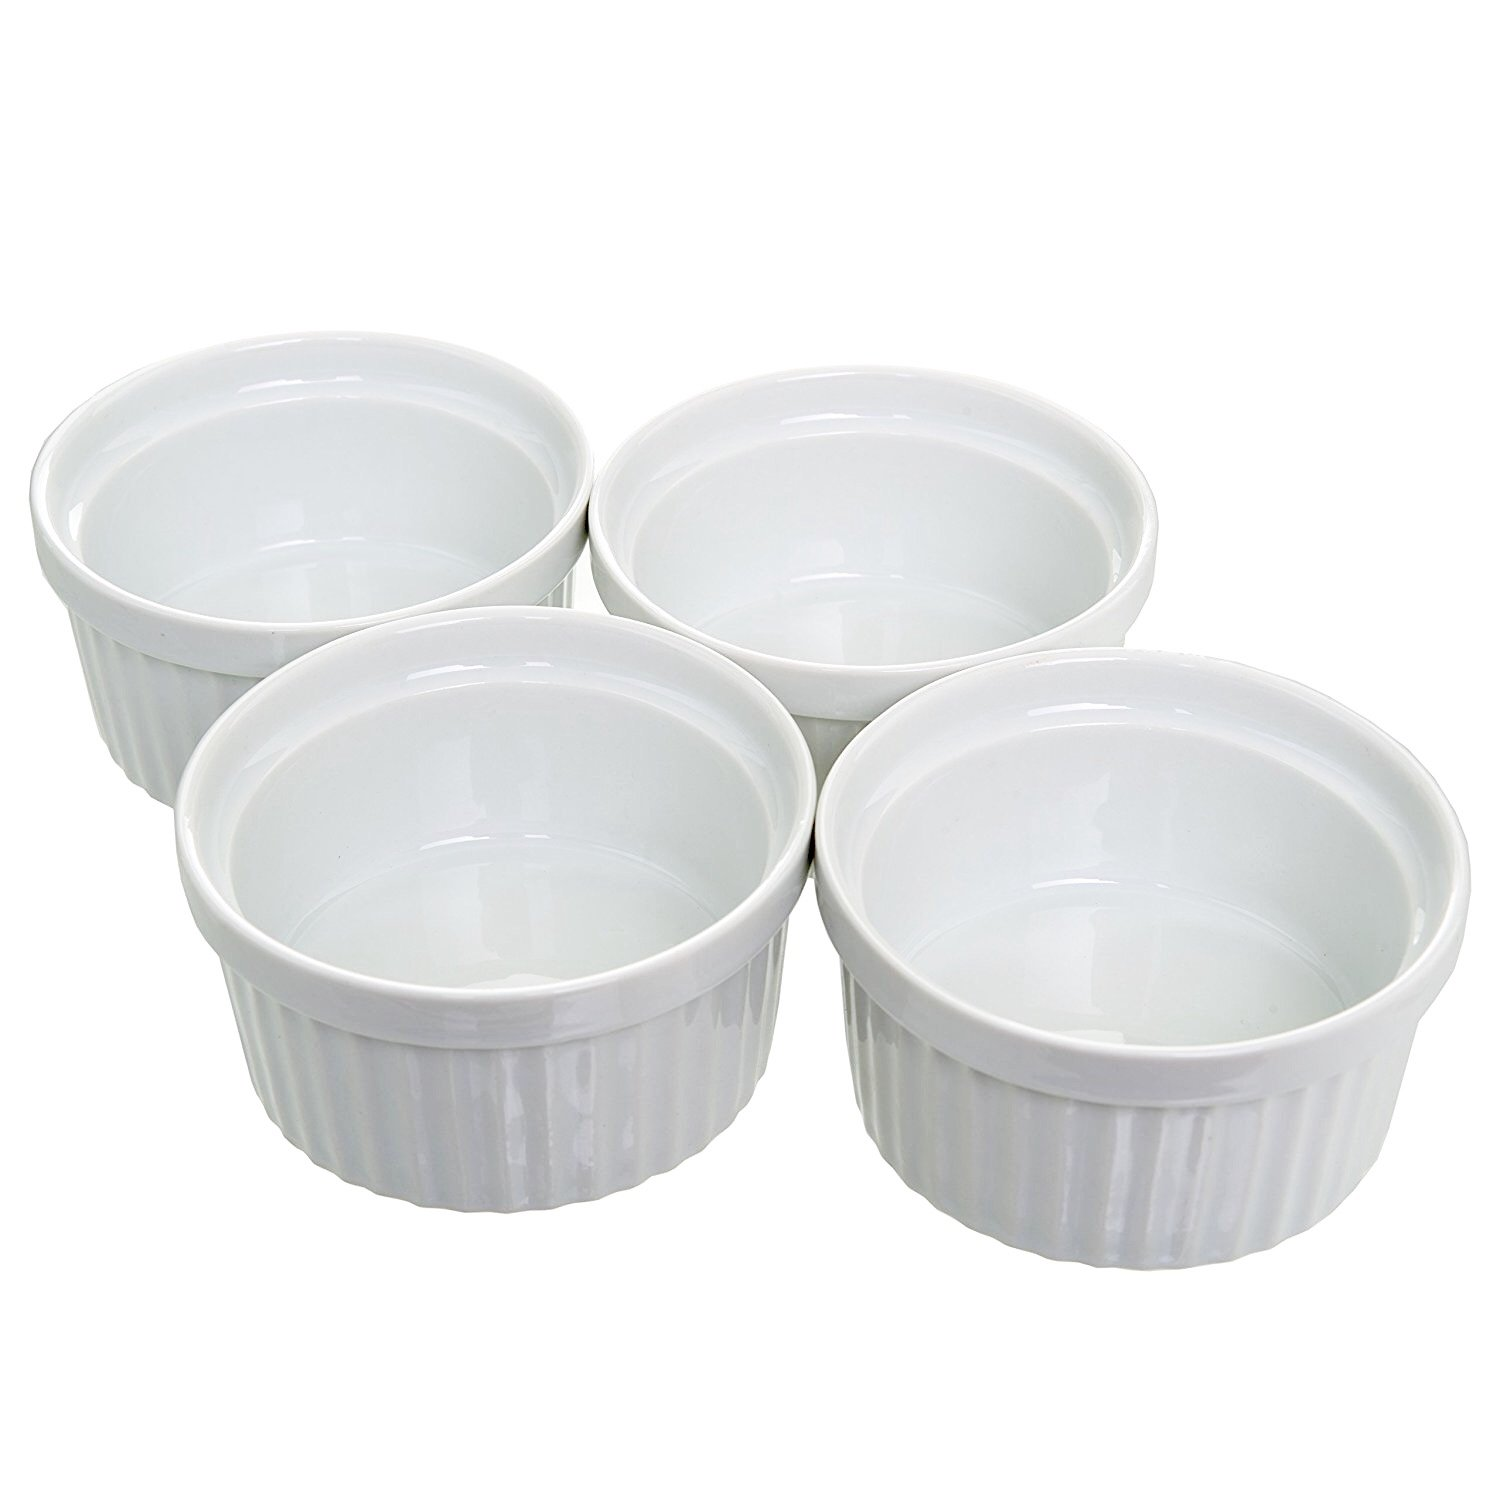 (Set of 4) 4 oz. Porcelain Ramekins, White, Bakeware, Souffle Cups Dishes, Creme Brulee, Pudding, Custard Cups, Desserts, by California Home Goods